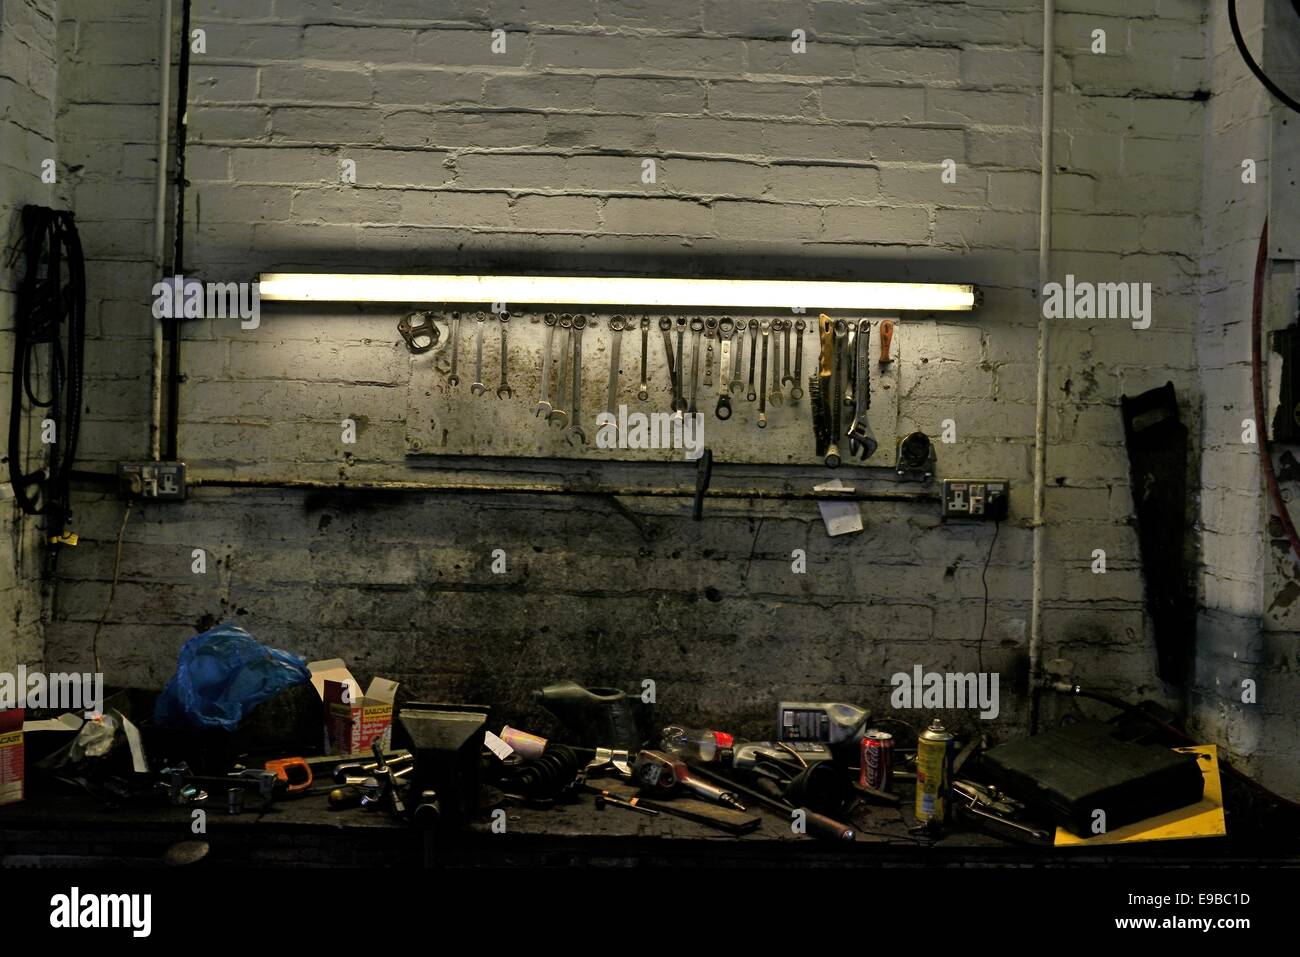 A fluorescent strip light illuminates spanners on a rack and scattered tools on a workbench - Stock Image